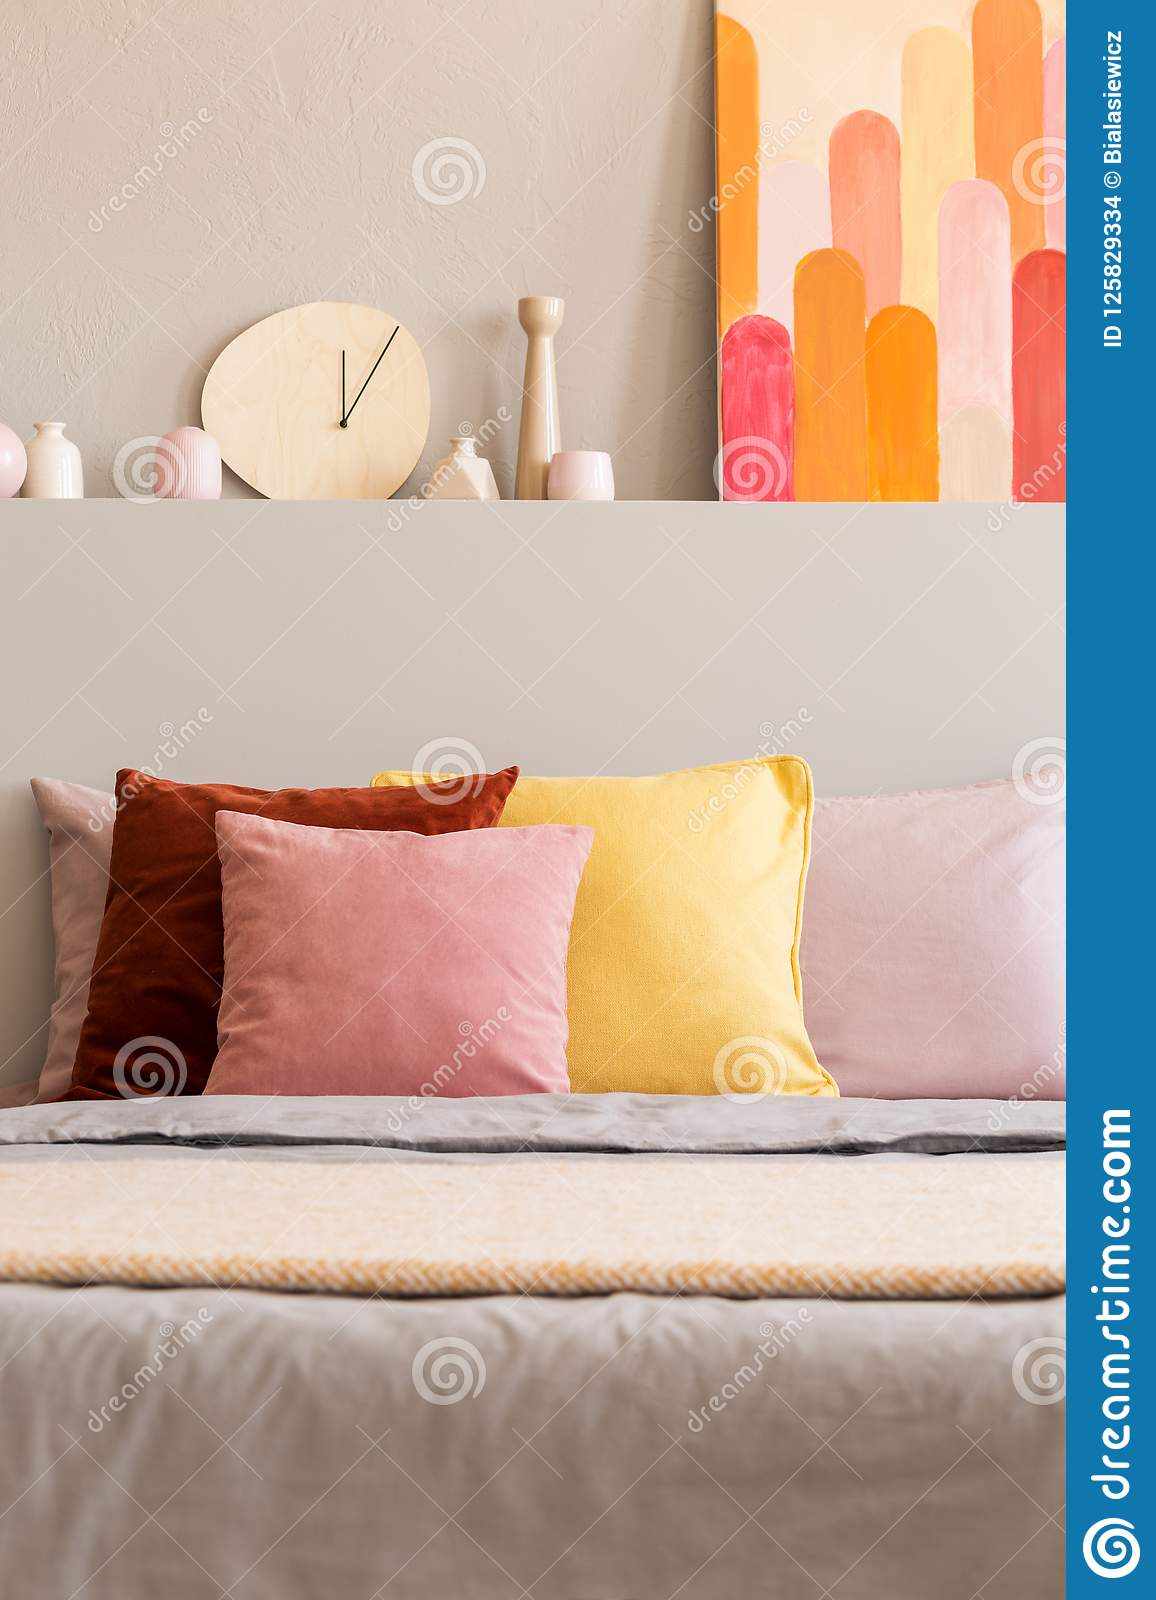 Real Photo Of Bed With Colorful Pillows In Bright Room Interior Stock Photo Image Of Cushions Colorful 125829334